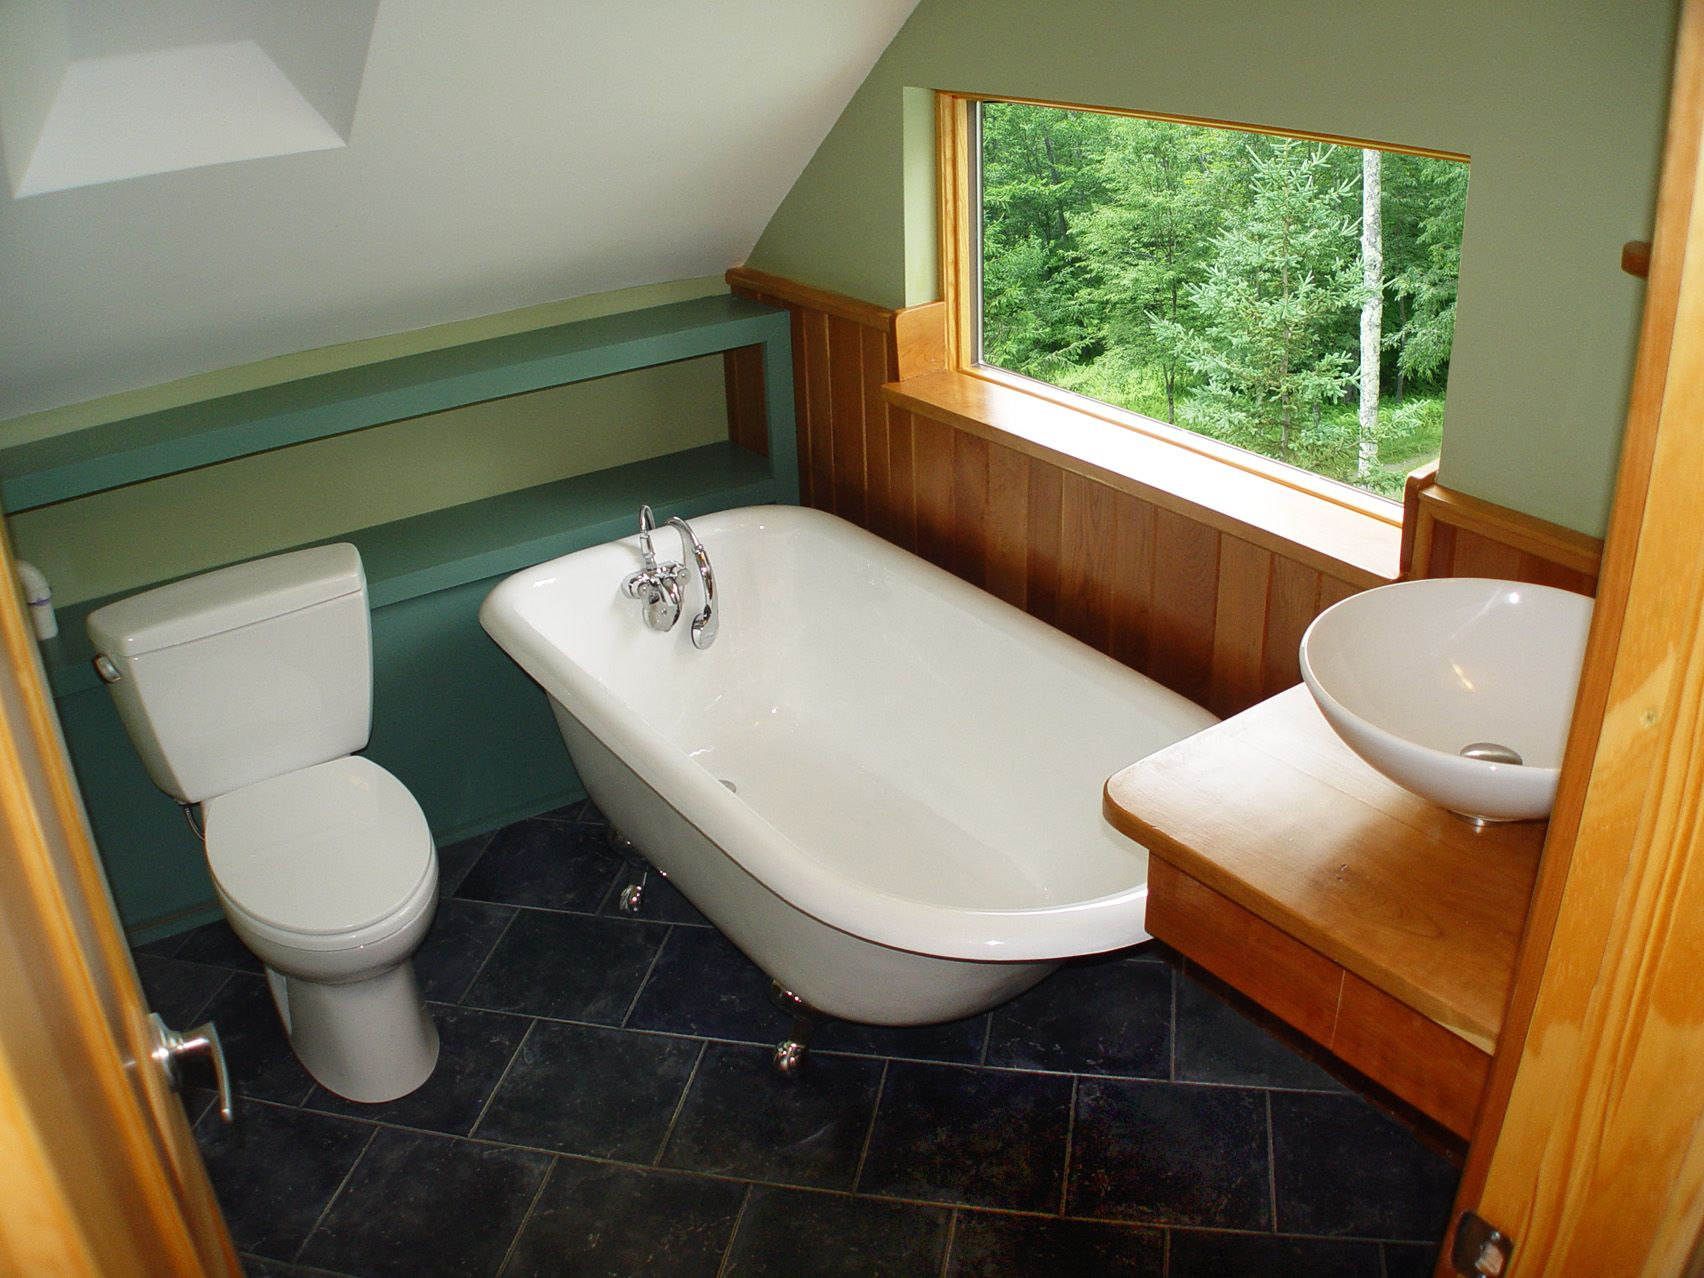 Where The Toilet Is Could Be The Bidet The Window Would Be In A Different Spot Small Bathroom Slanted Ceiling Bathroom Renos